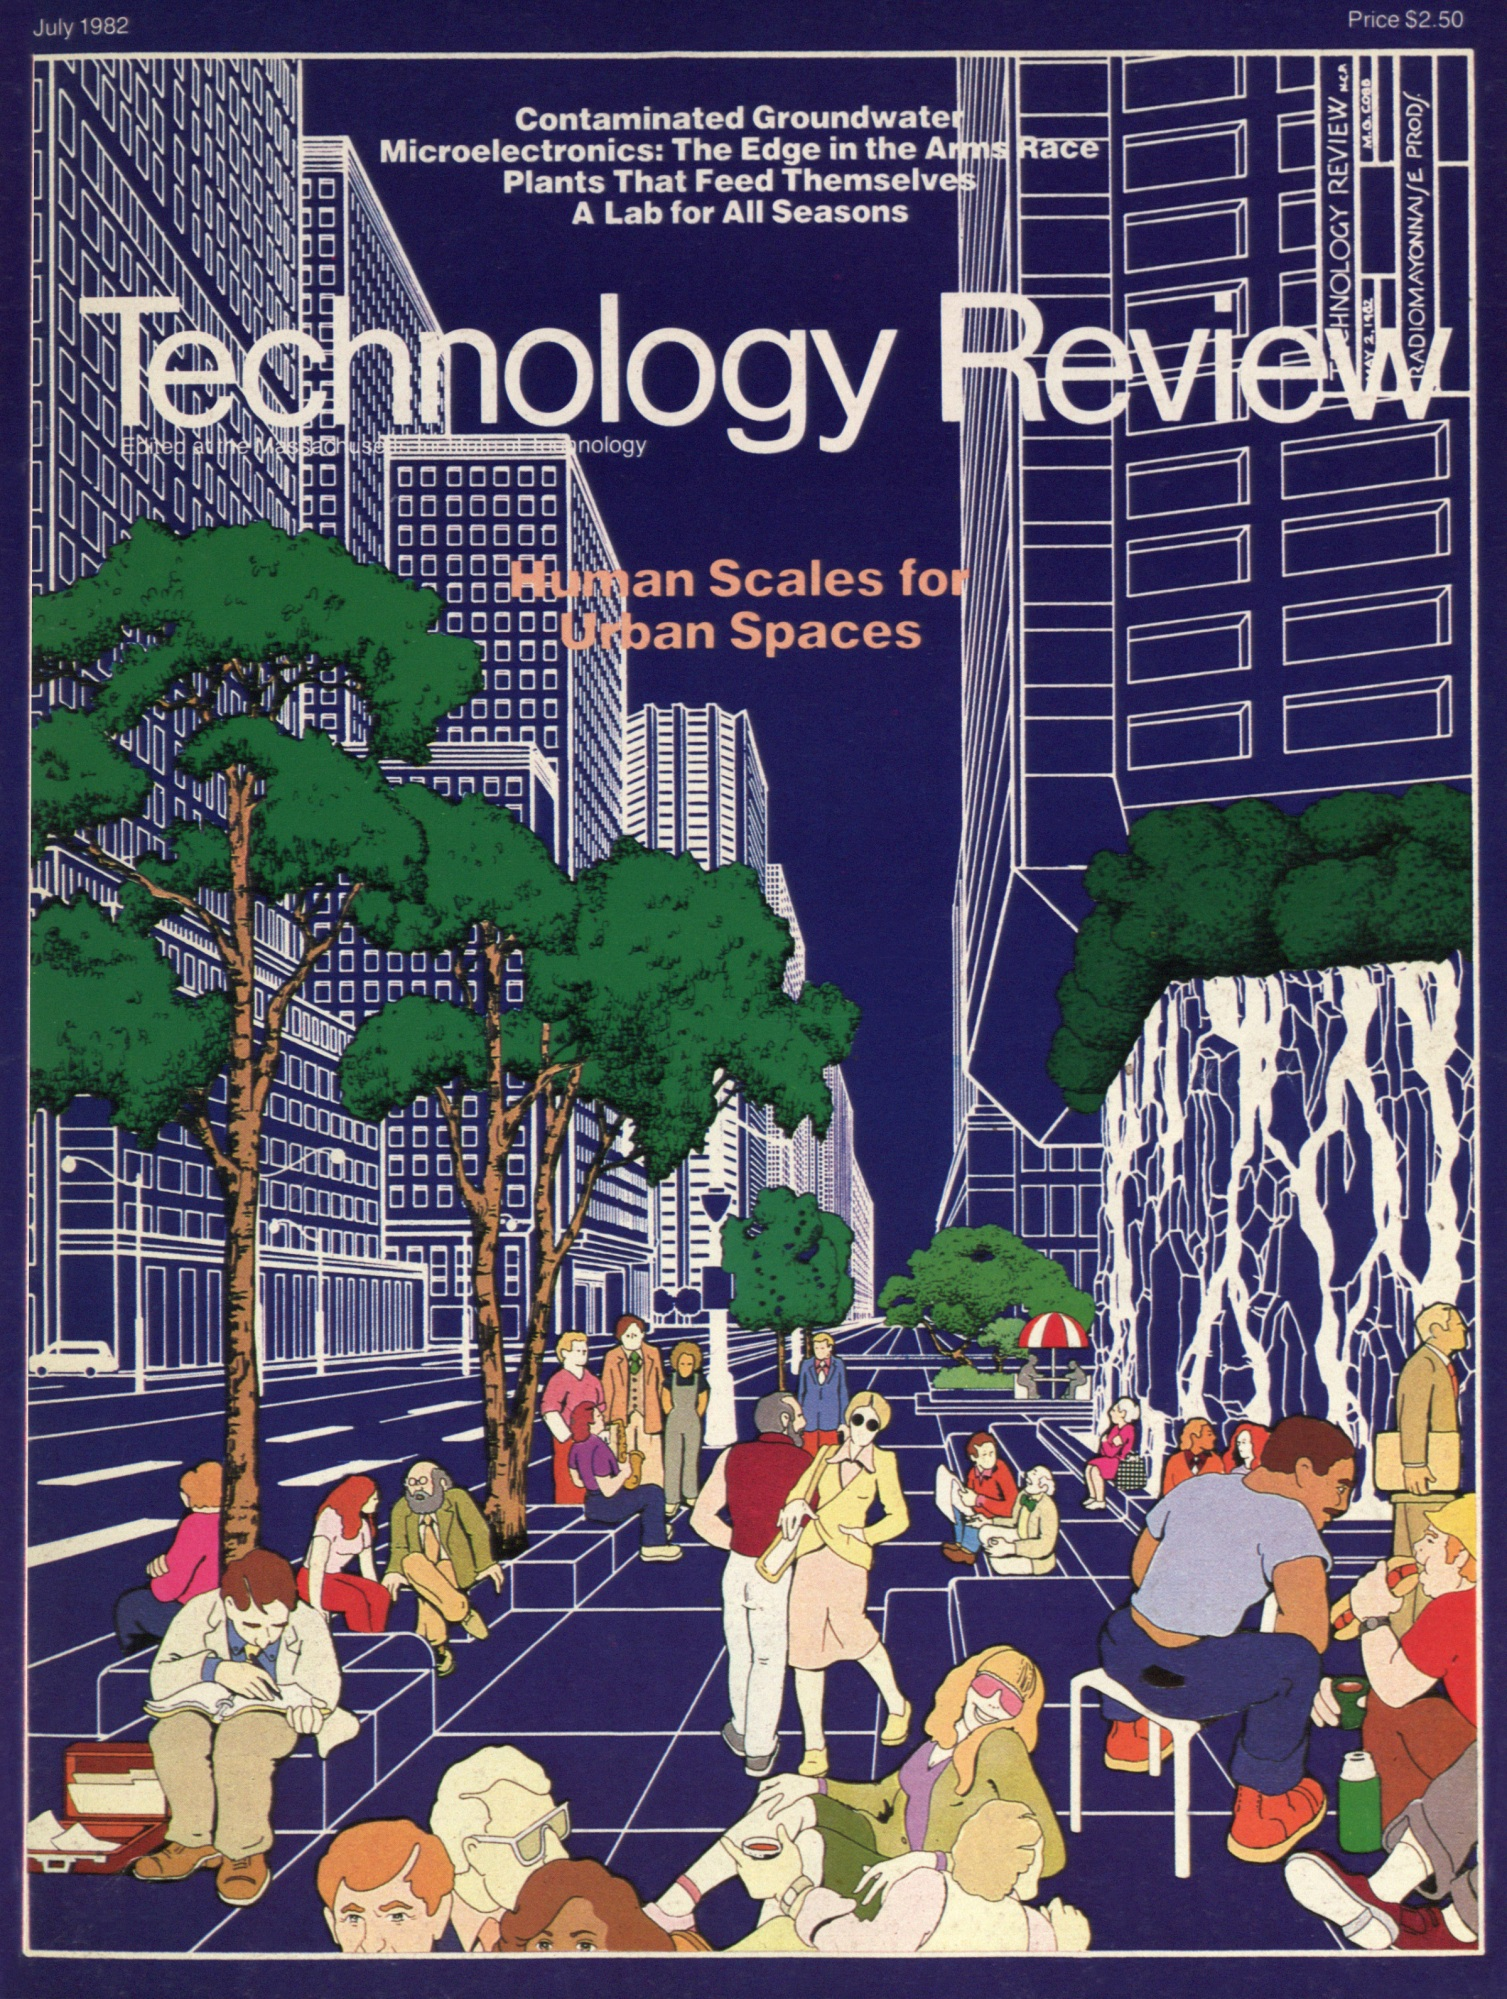 May/June 1982 cover